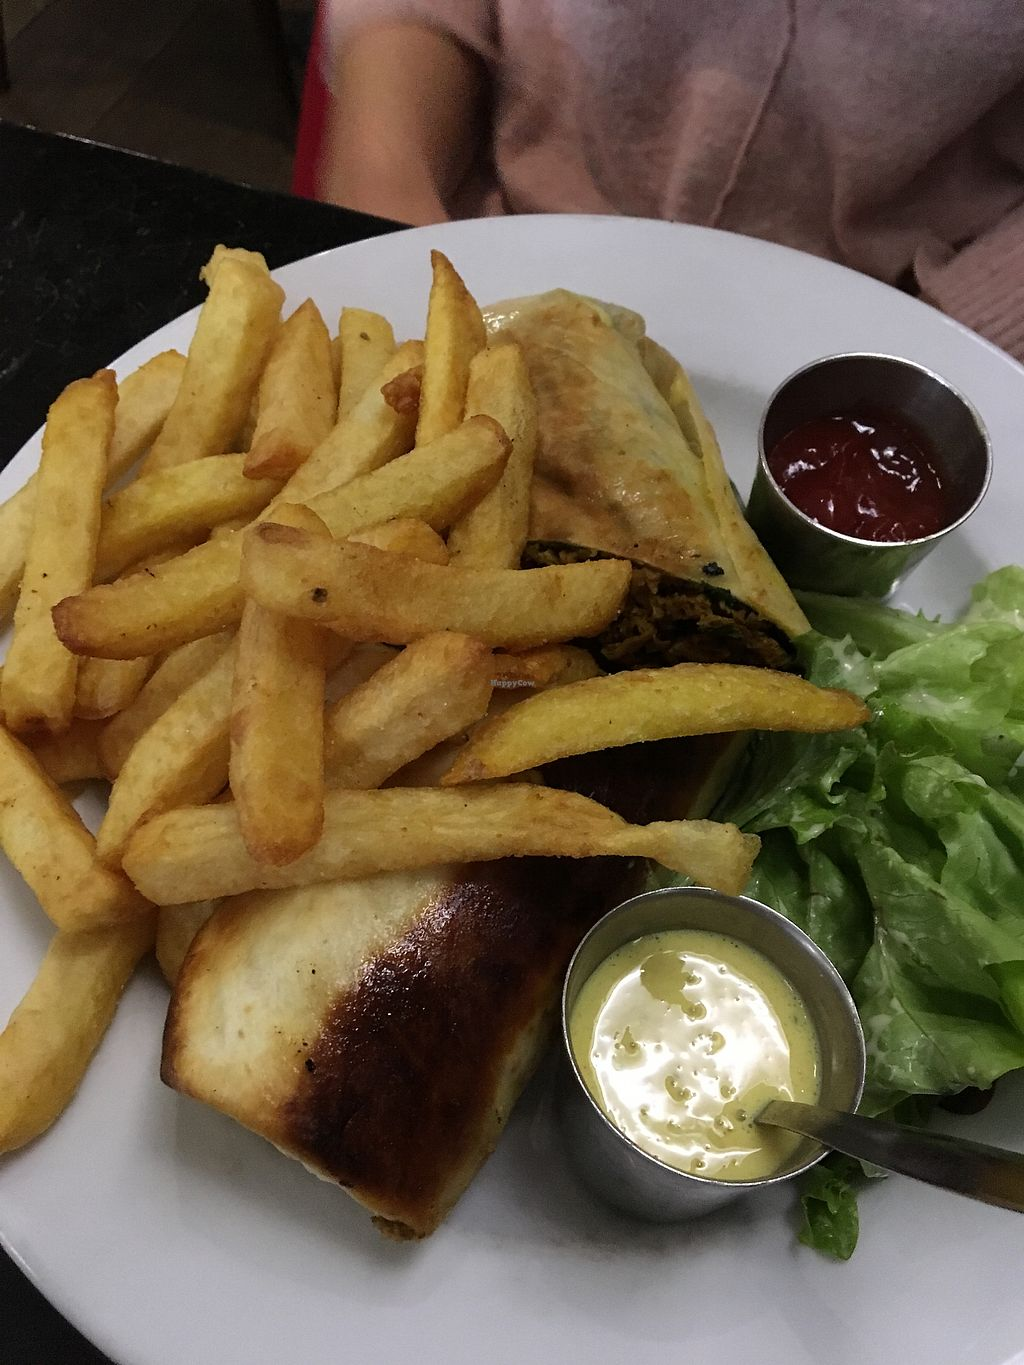 """Photo of Brasserie 2eme Art  by <a href=""""/members/profile/LouP"""">LouP</a> <br/>Kebab  <br/> November 11, 2017  - <a href='/contact/abuse/image/73690/324327'>Report</a>"""